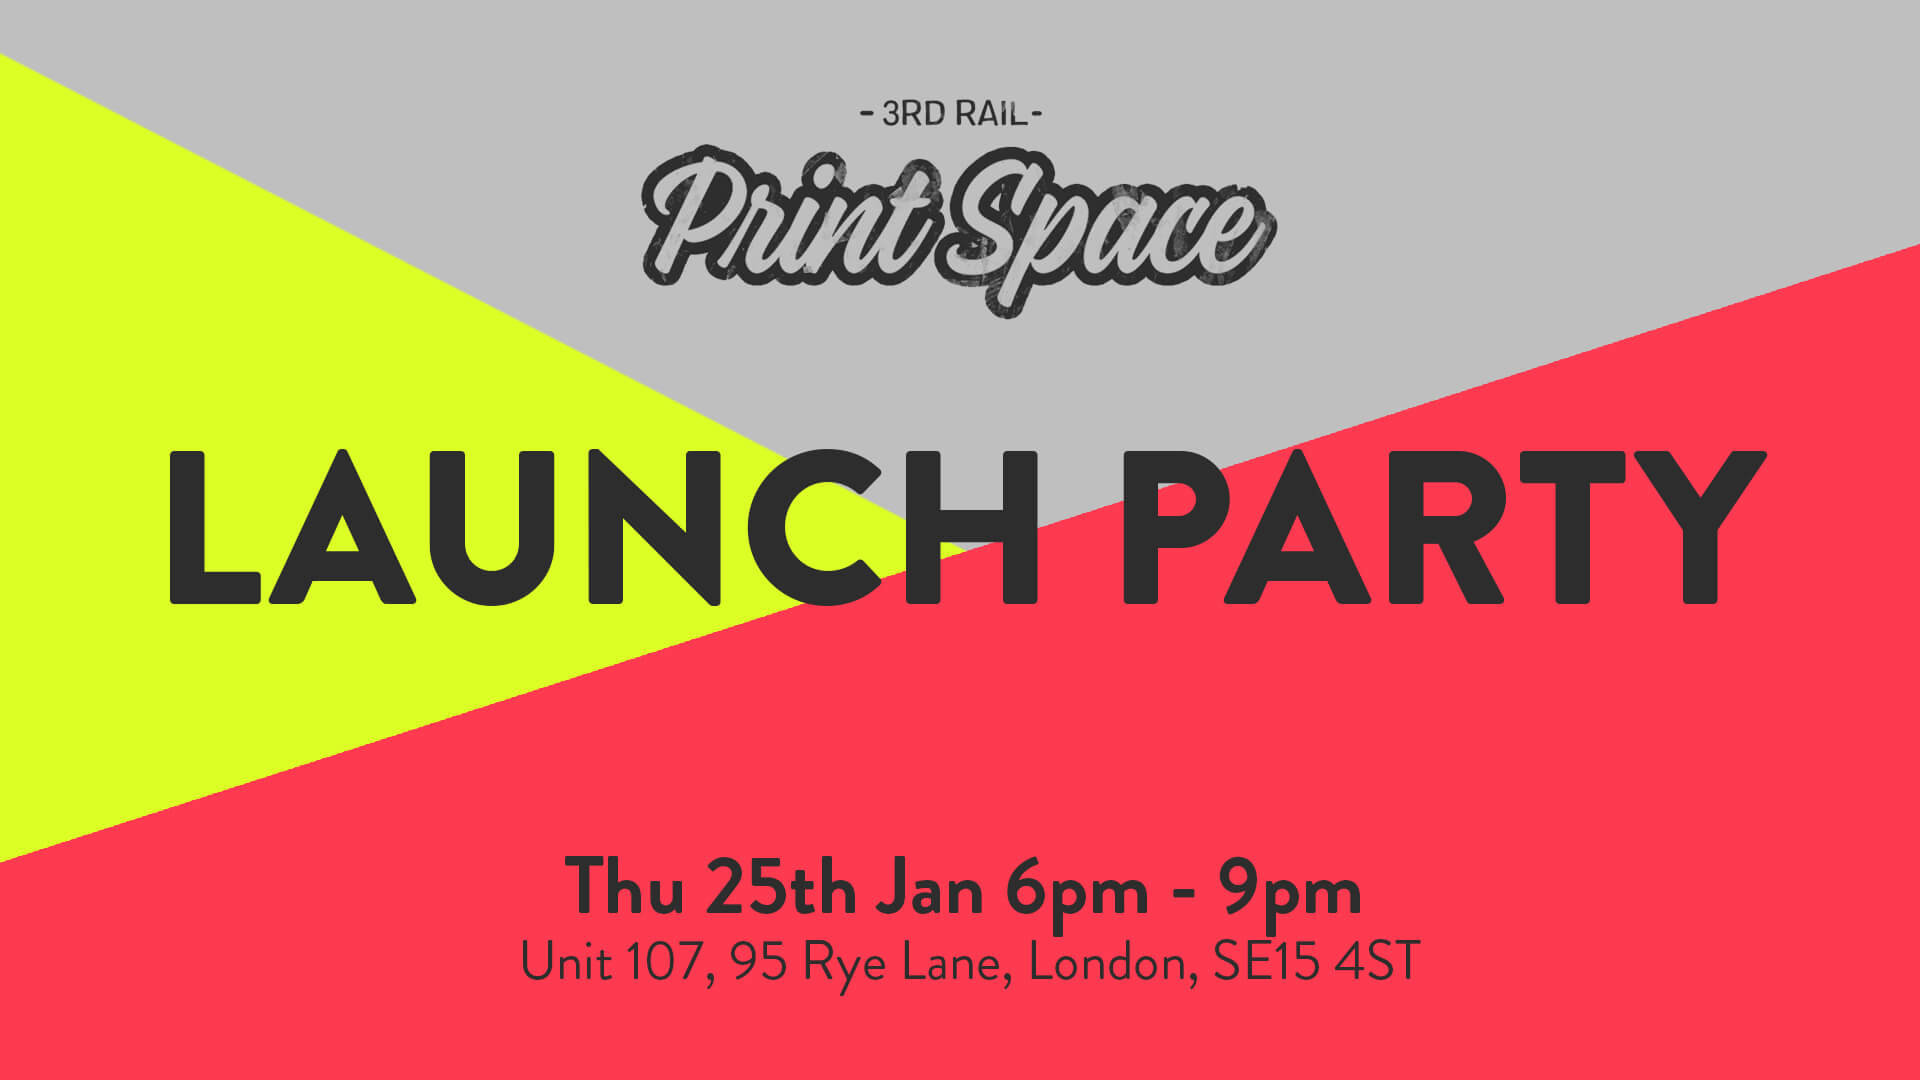 London's Biggest Open Access Screen Printing Studio is Launching